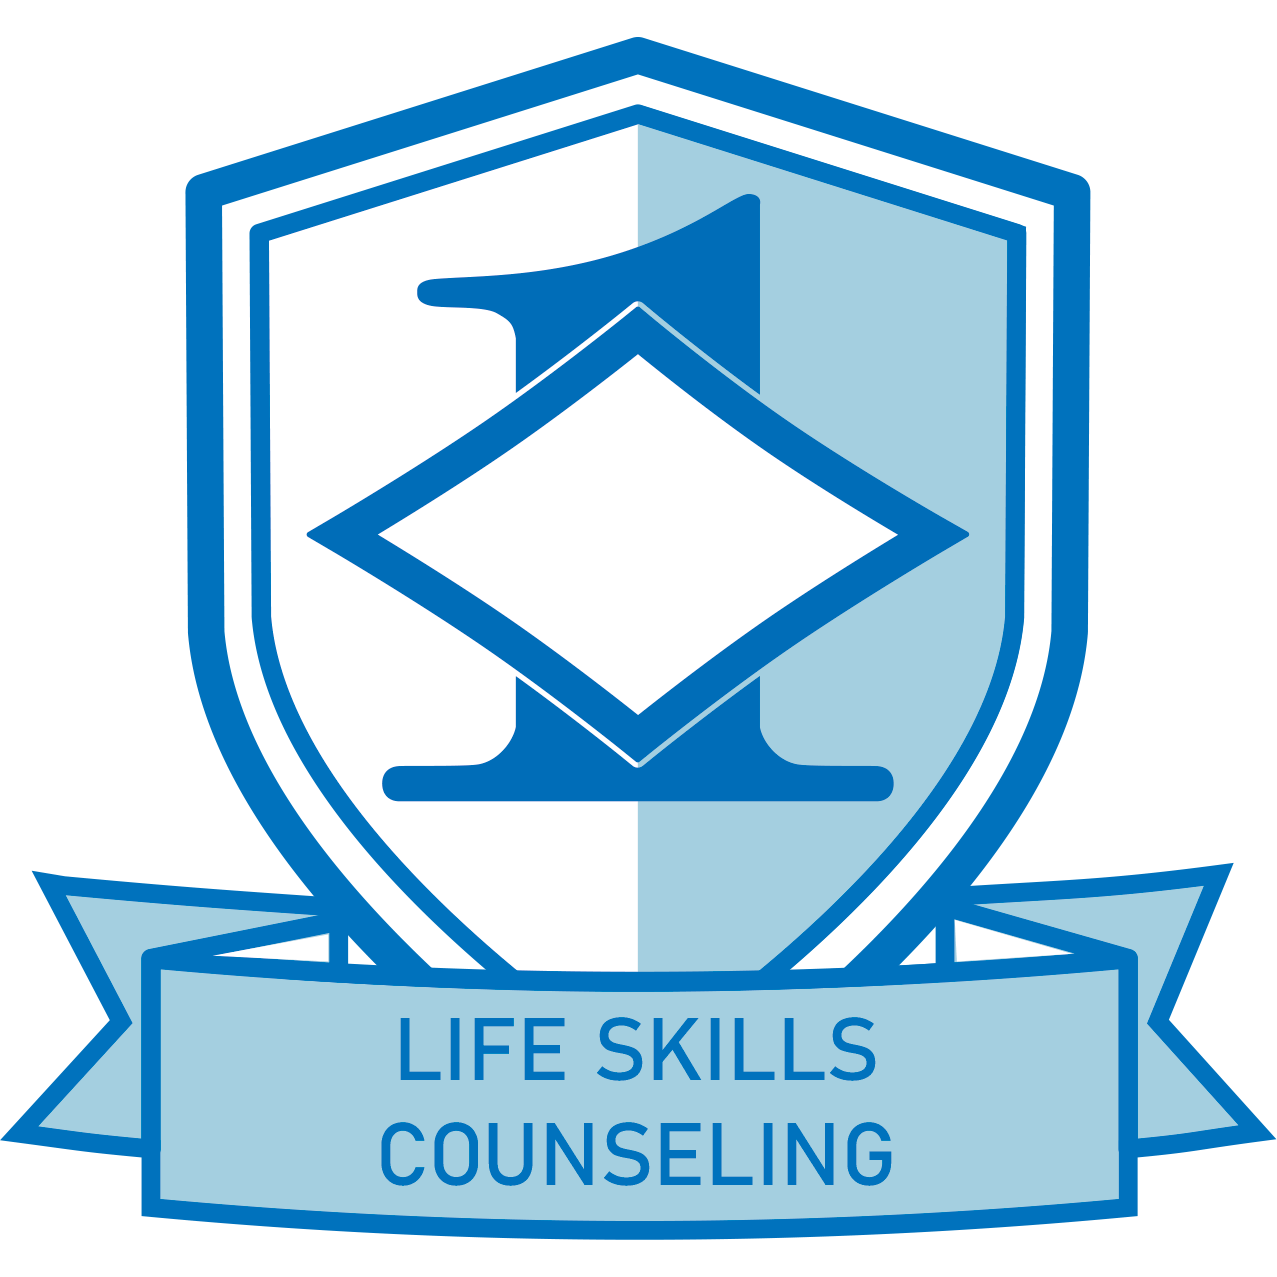 Life Skills Counseling